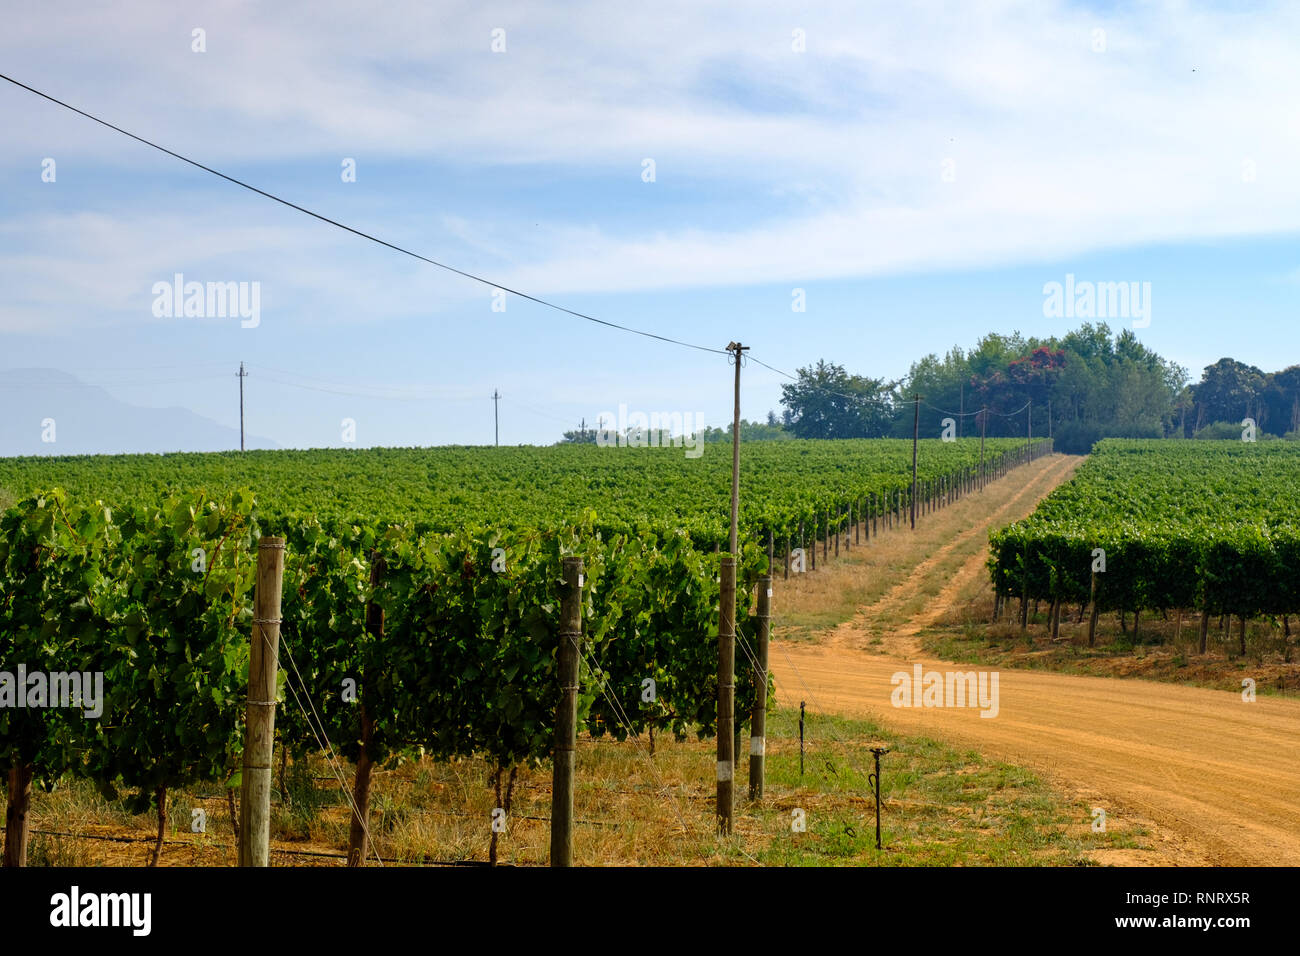 The Thelema Vineyard in Stellenbosch, near Cape Town, South Africa Stock Photo